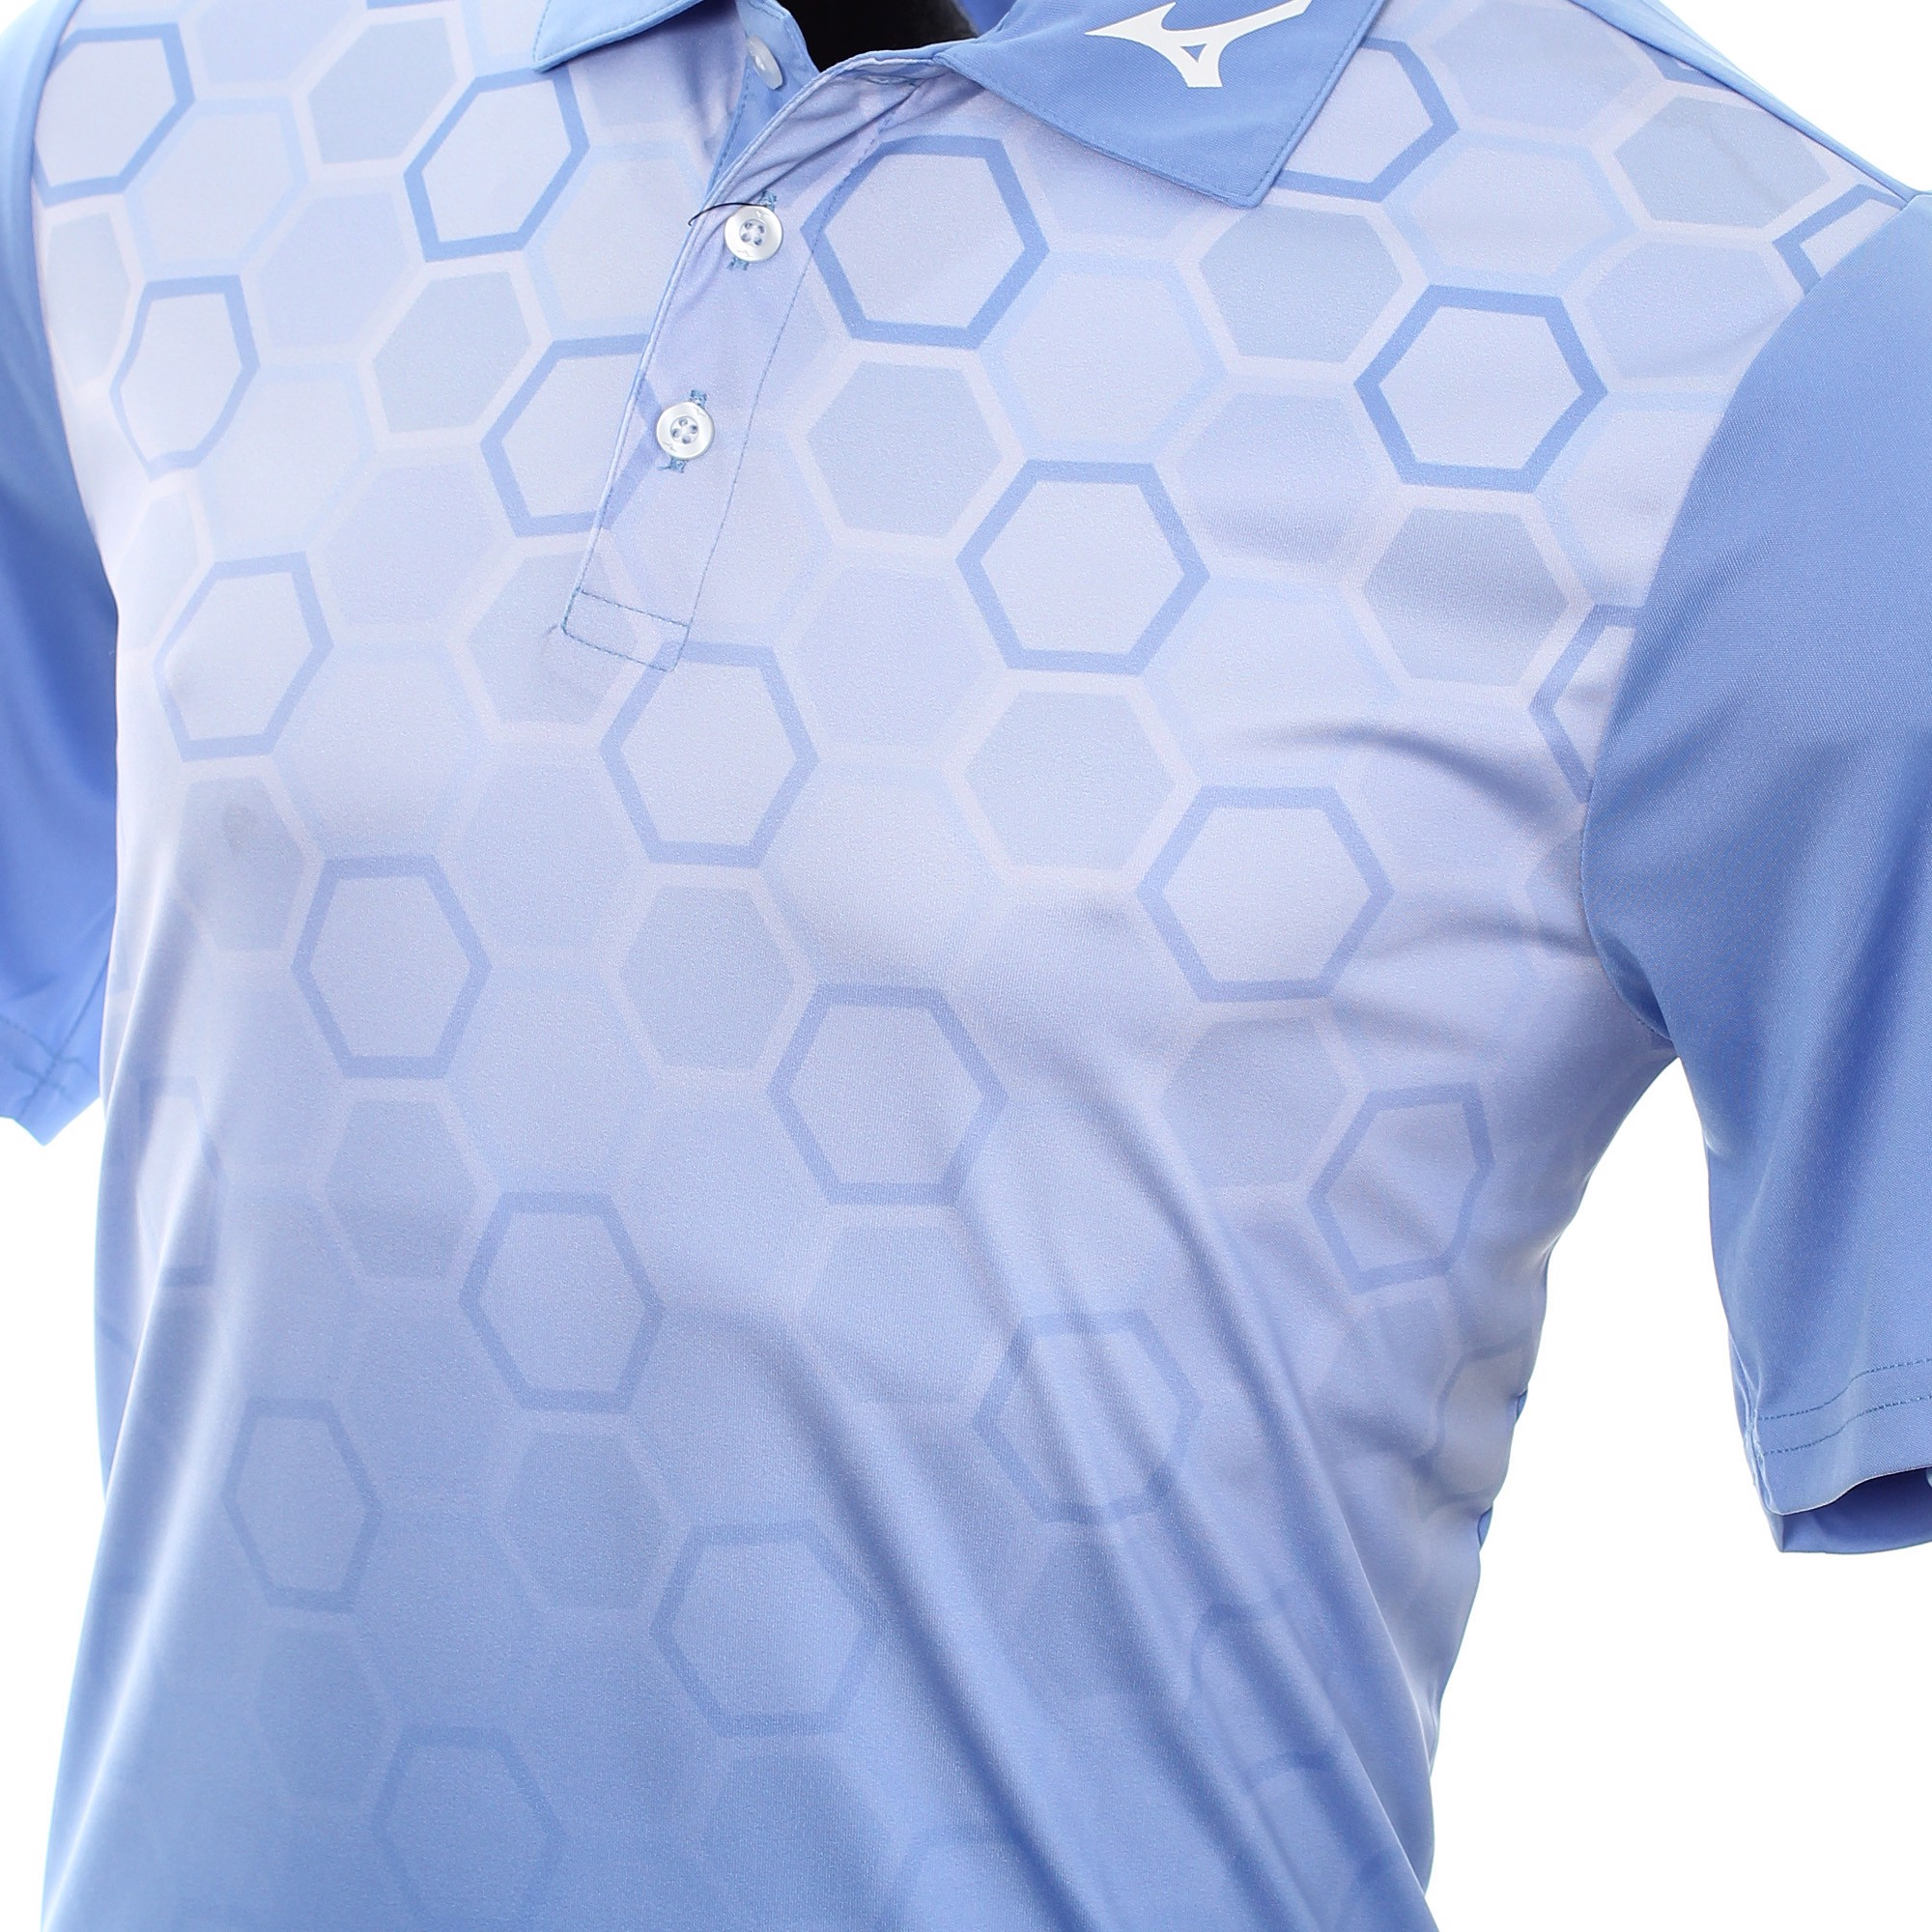 Áo golf nam tay ngắn Gradient Hexagon Lightweight 52SA000219 | Mizuno